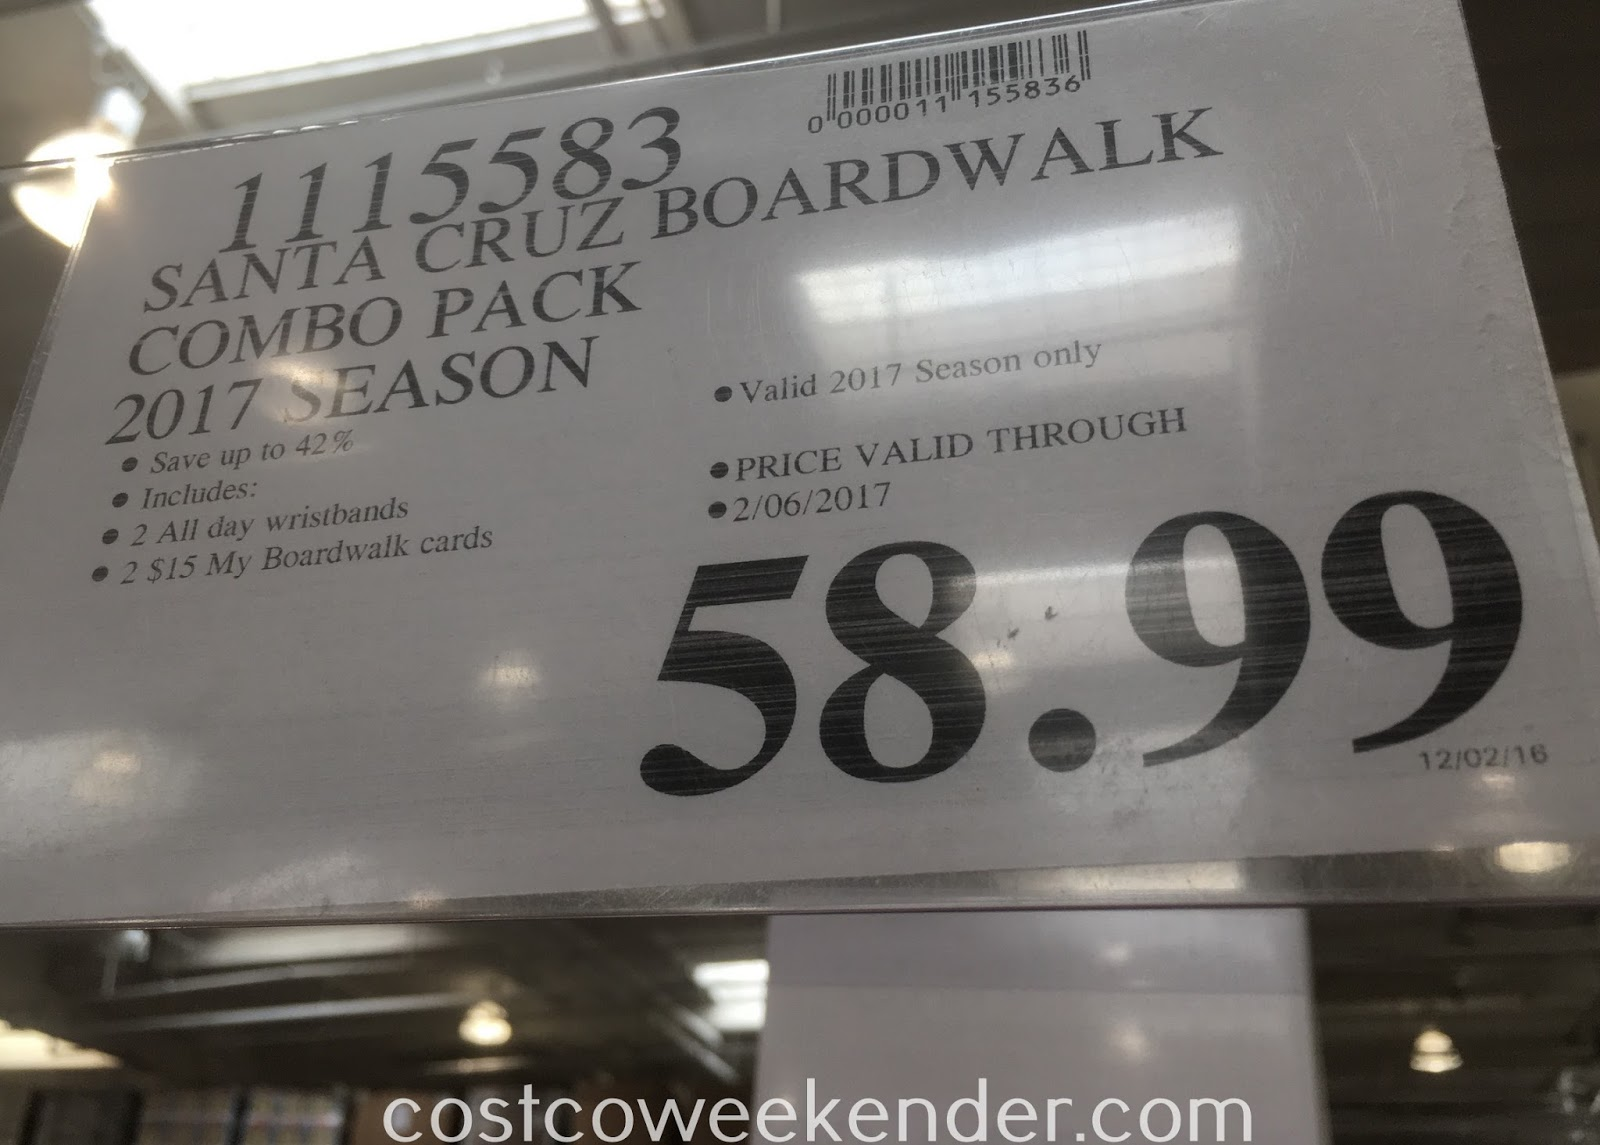 Deal for 2 Rides + Attractions Combos for Santa Cruz Beach Boardwalk at Costco